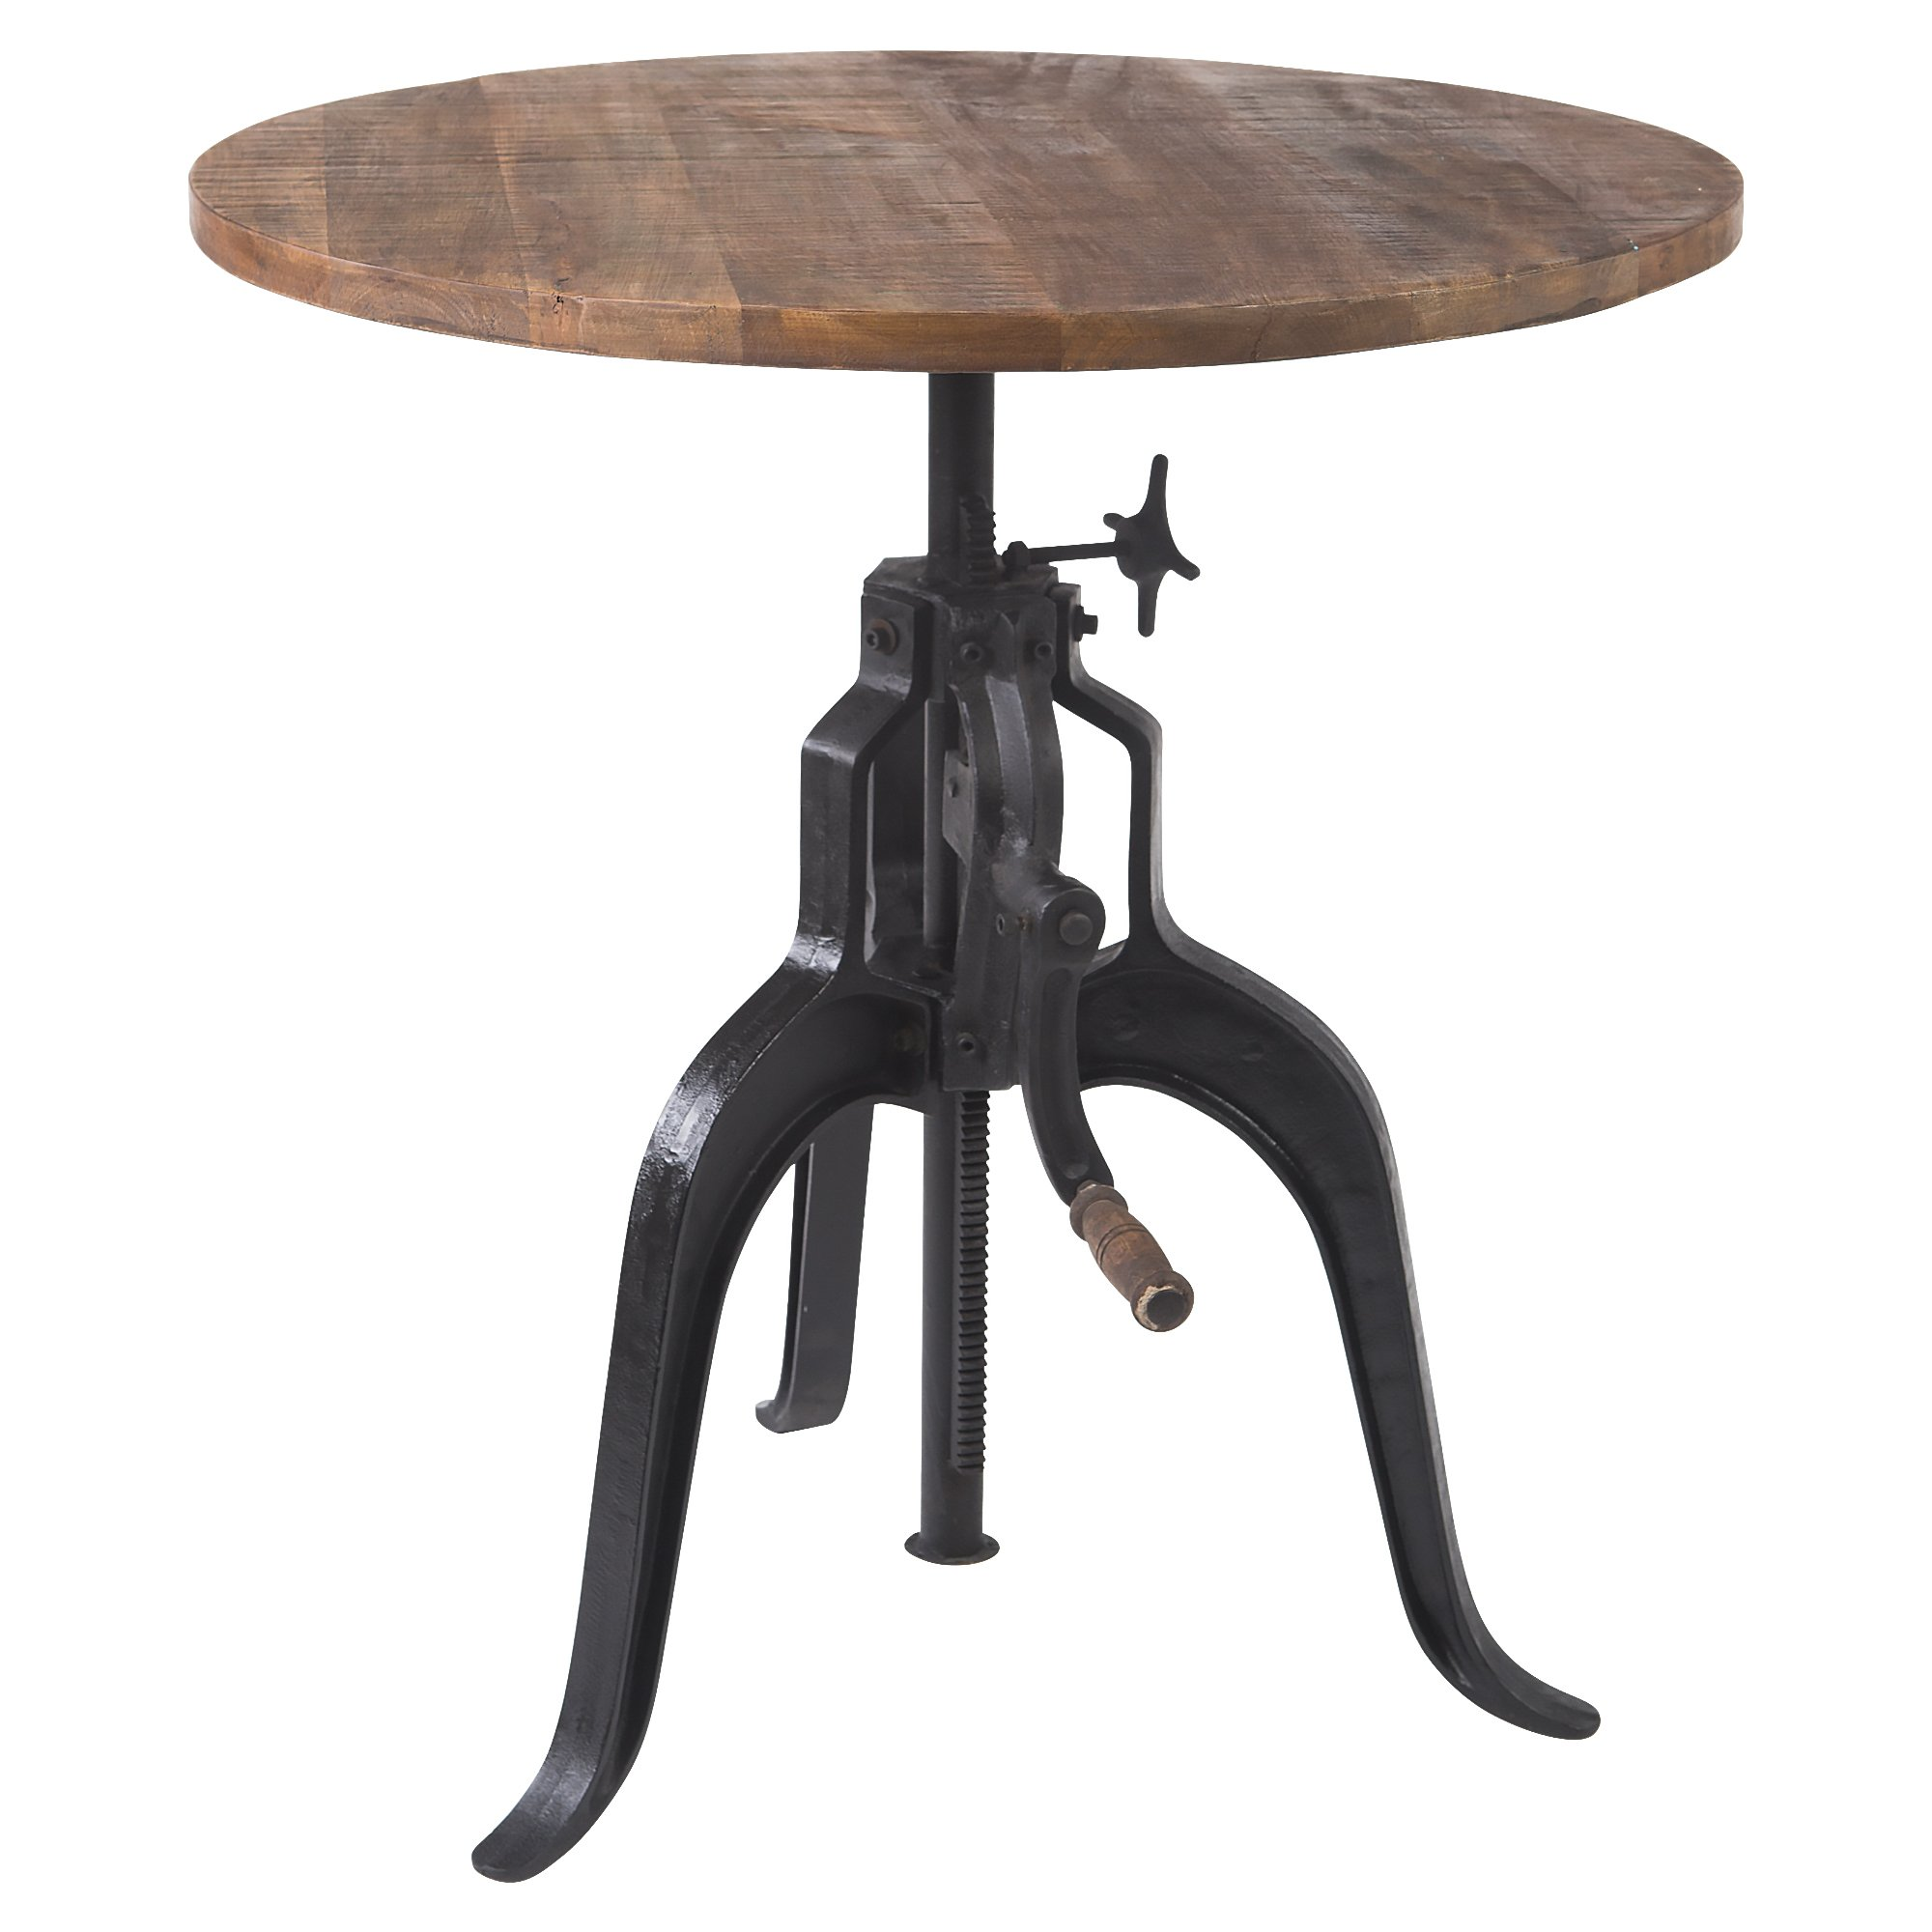 Yosemite Home Decor Crank Table, Brown by Yosemite Home Decor